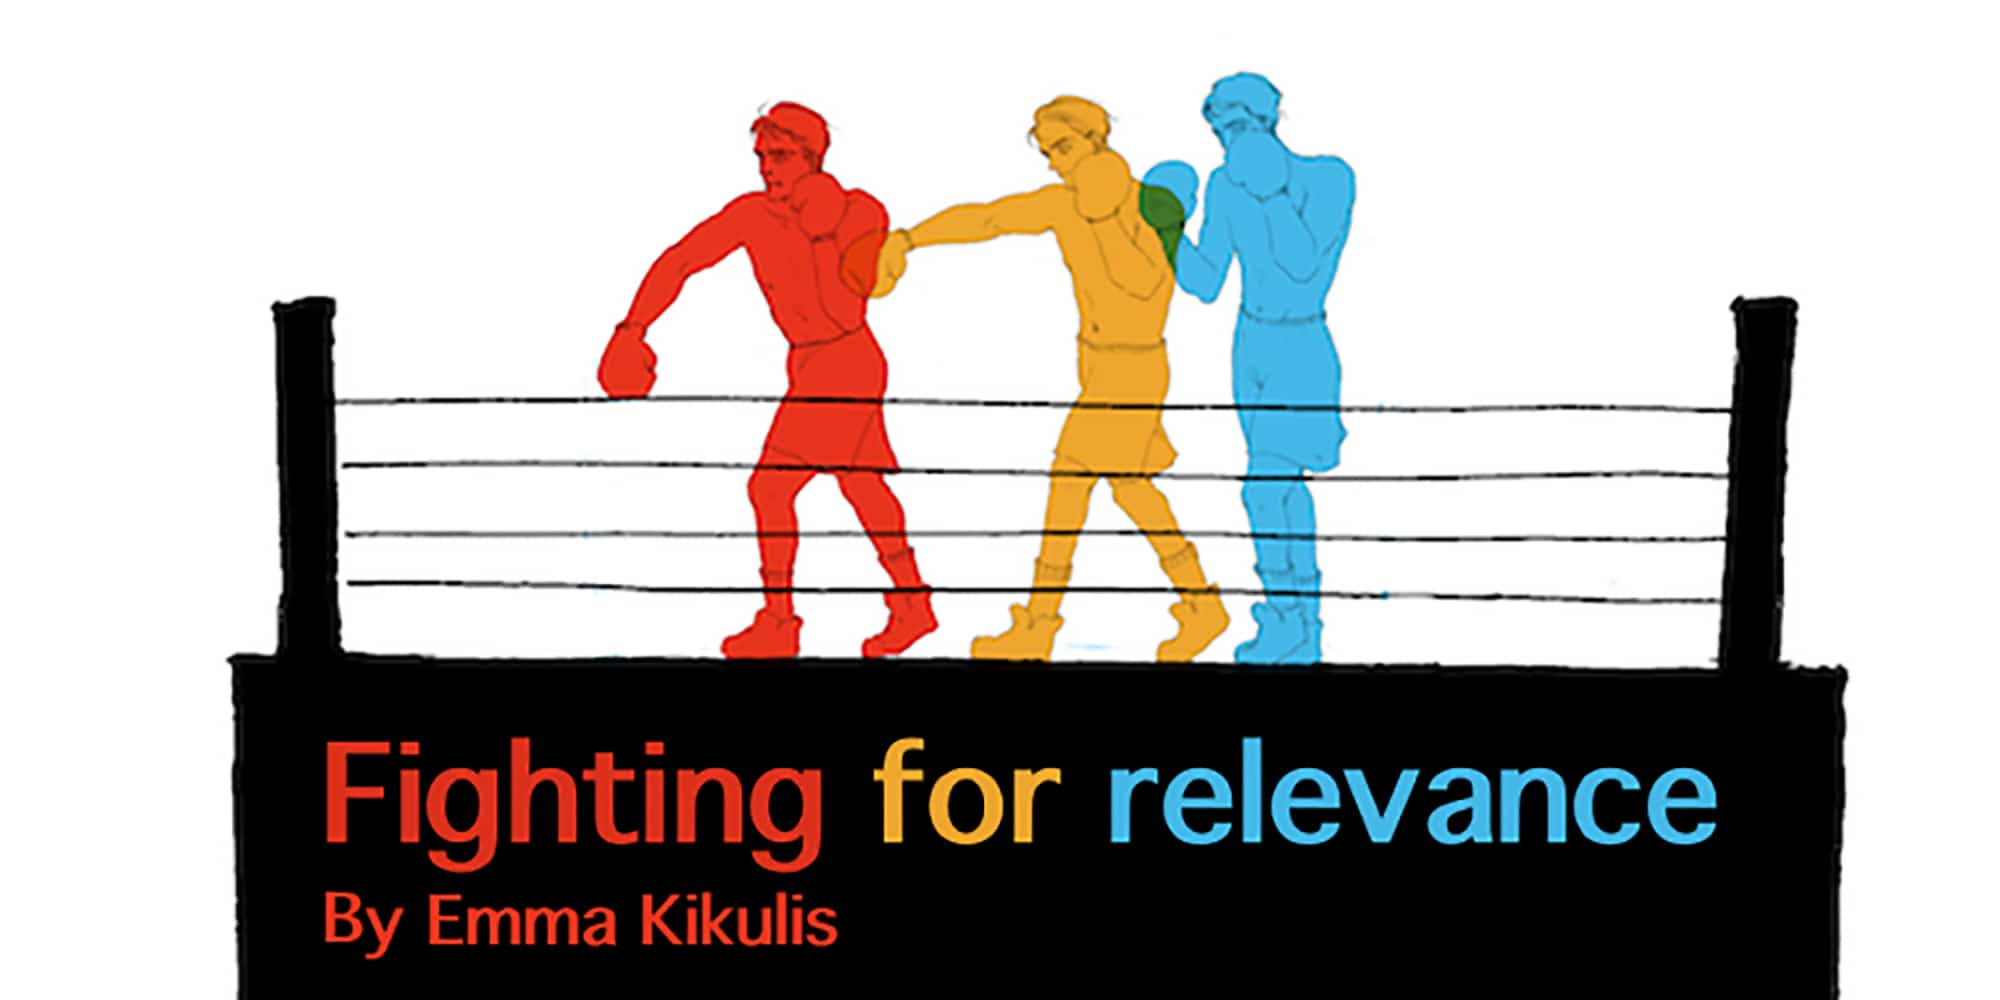 Fighting for relevance